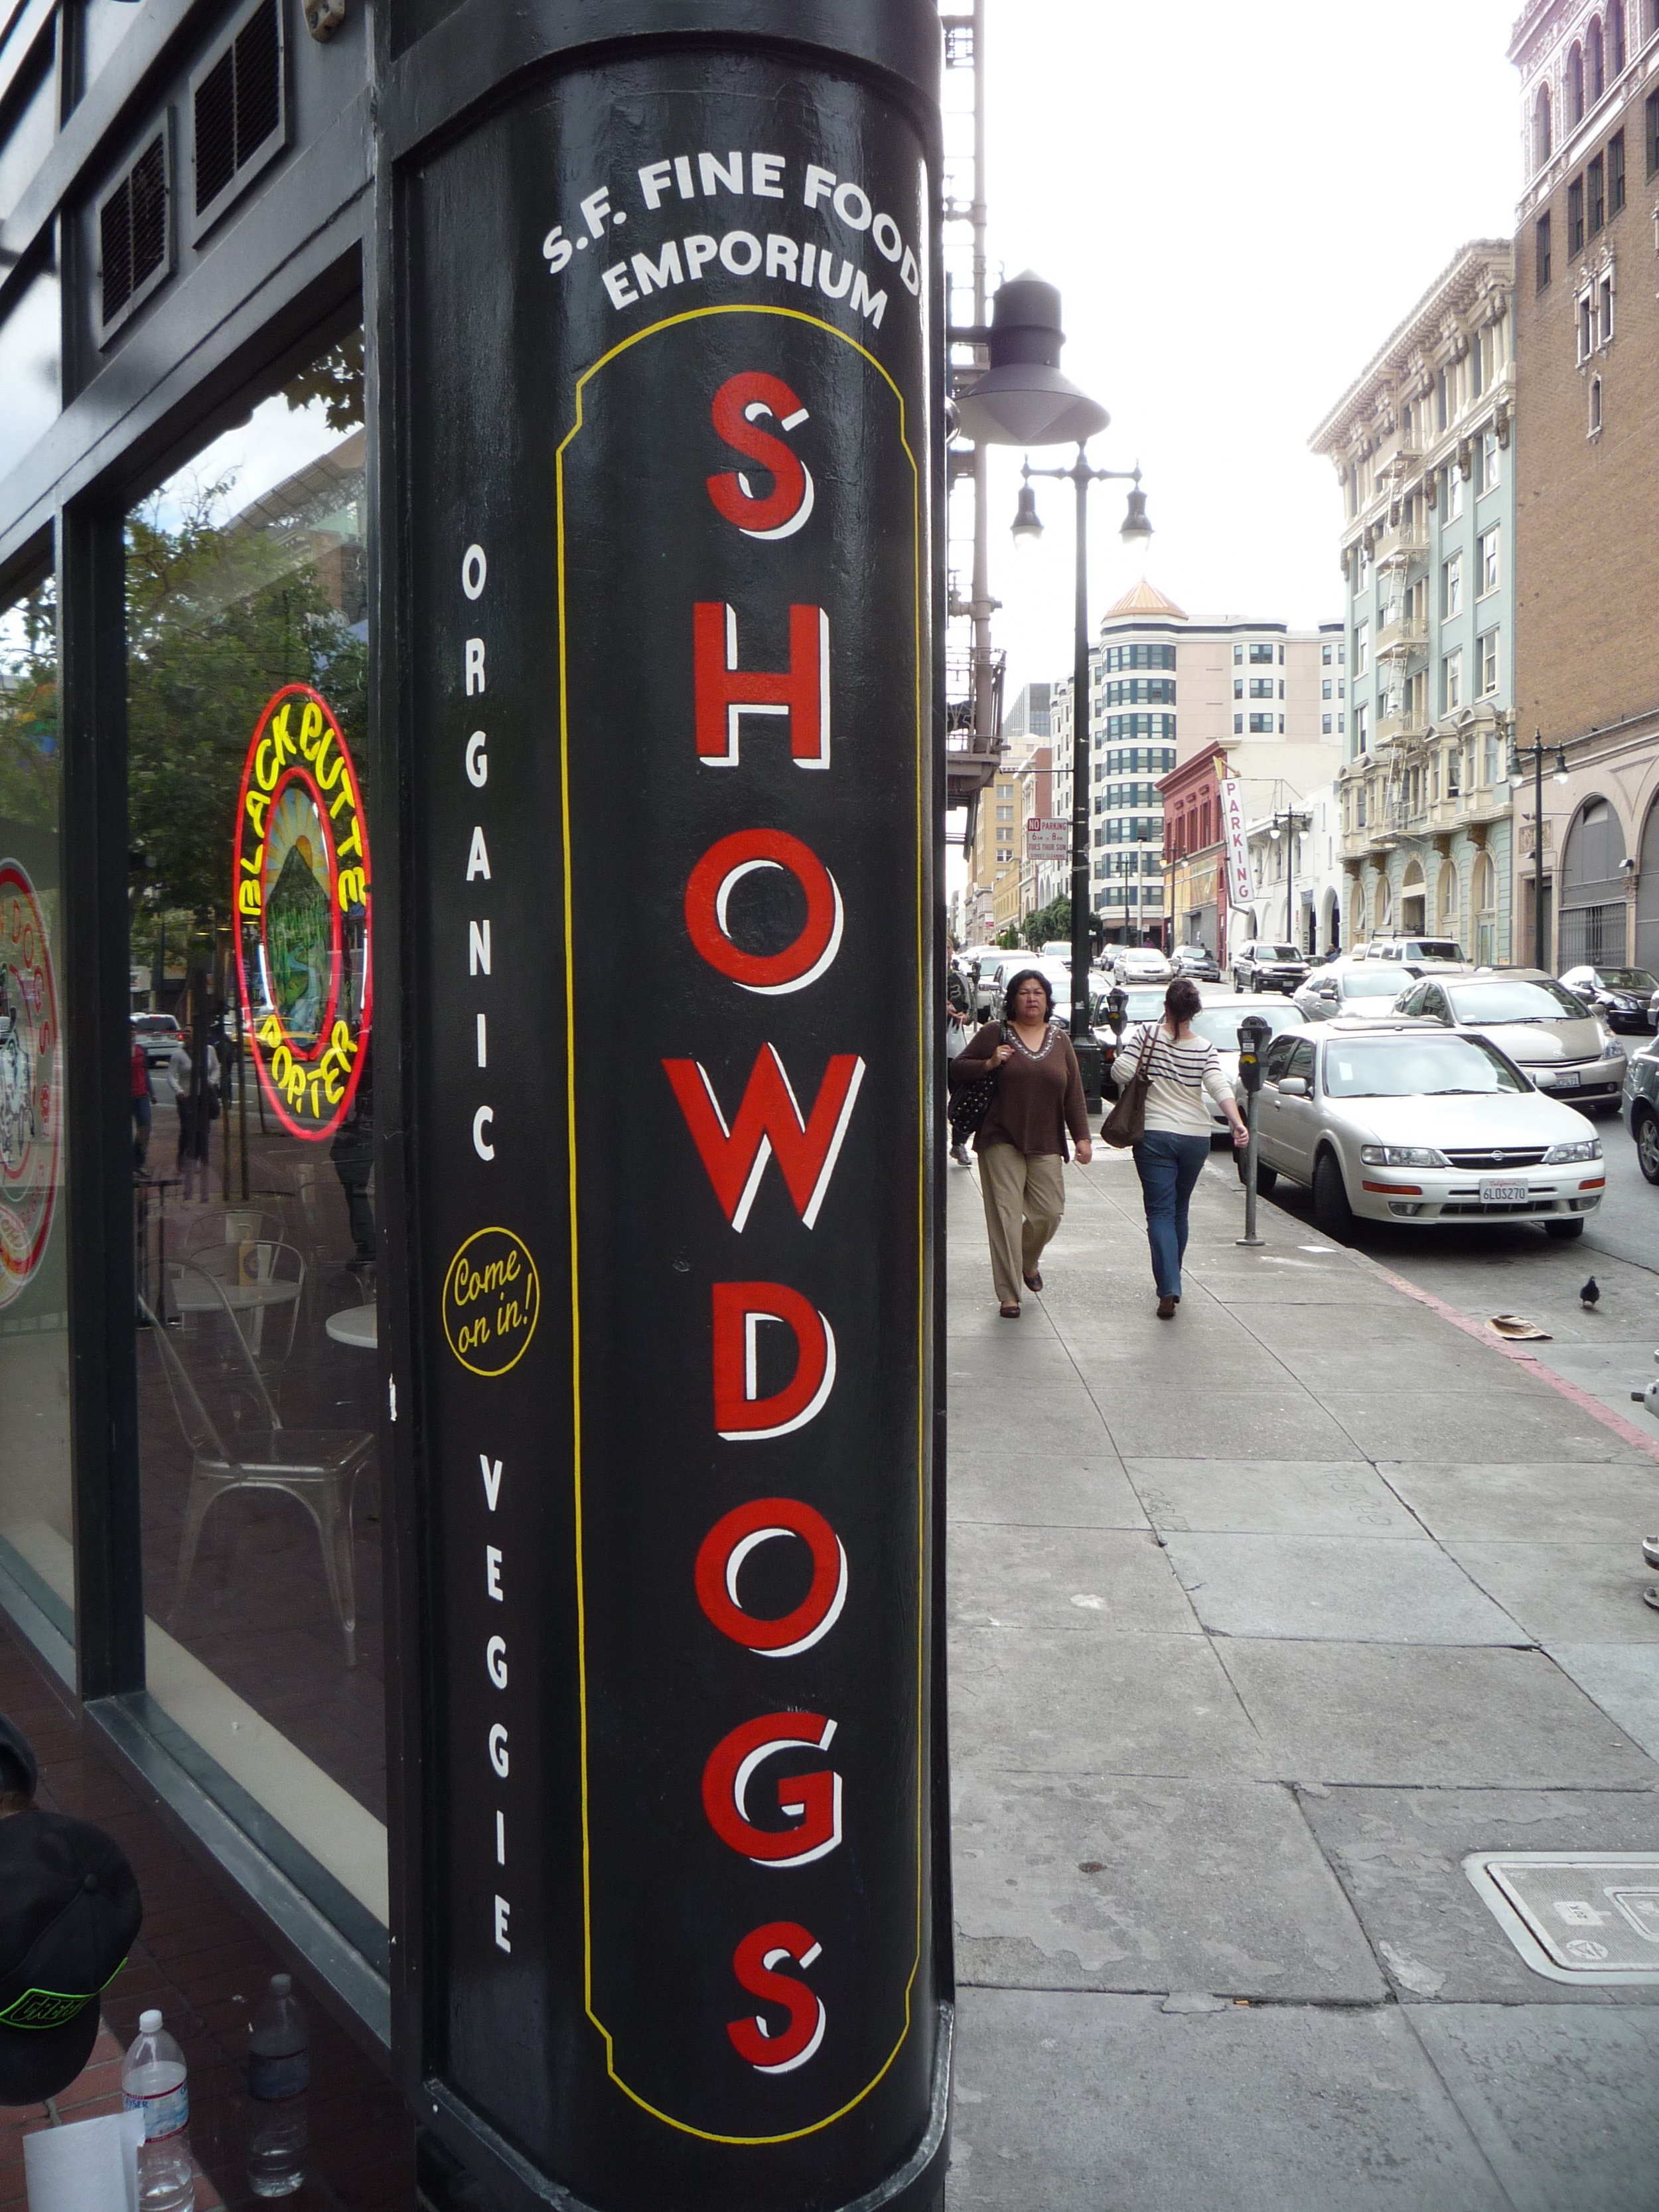 HAND-showdogs-bullnose-market-st-side_4747642300_o.jpg